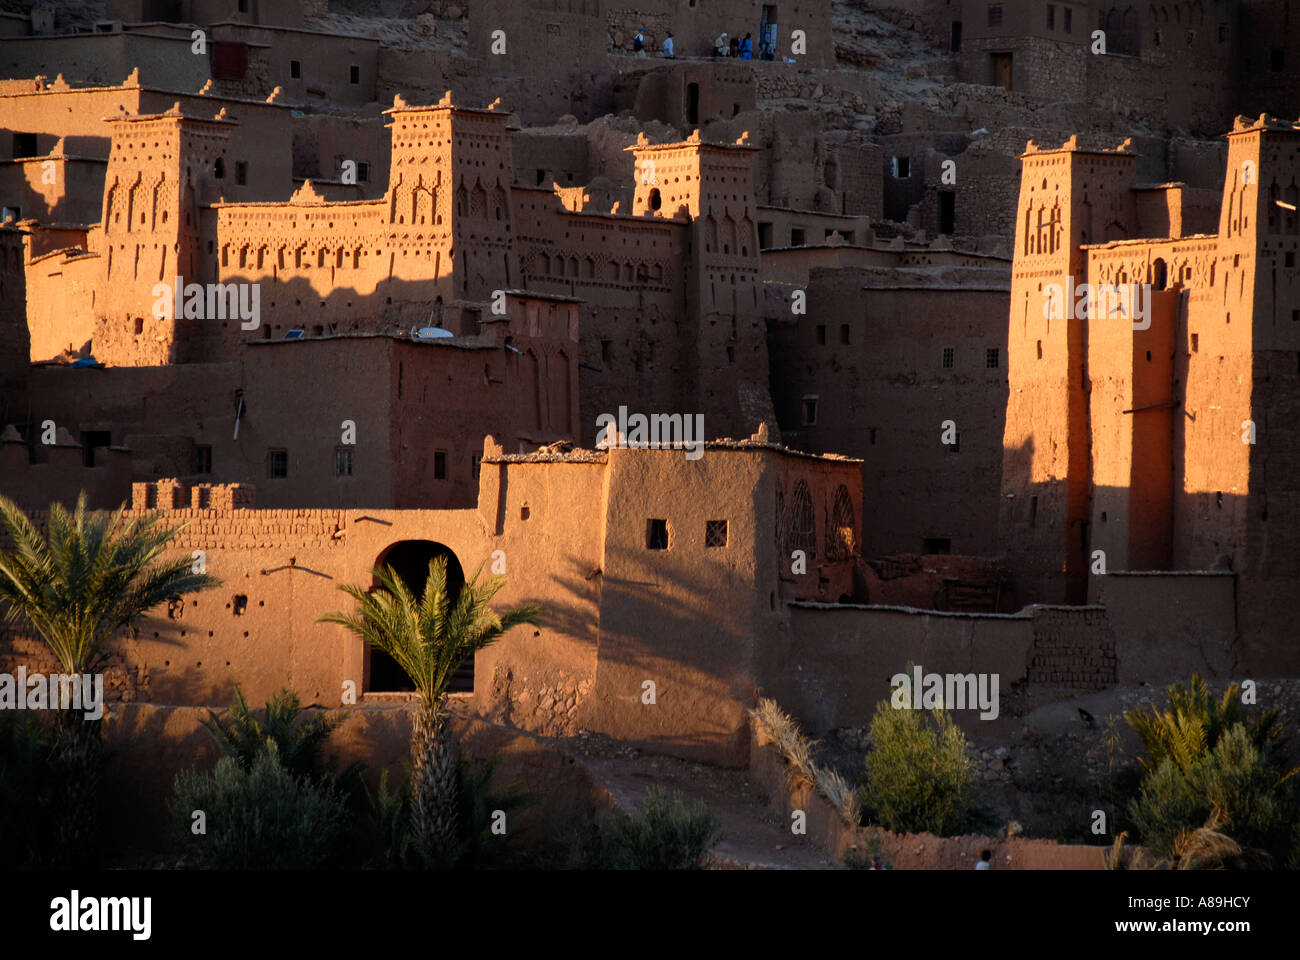 Evening light touches some buildings traditional Berber architecture Kasbah Ait Benhaddou Morocco - Stock Image